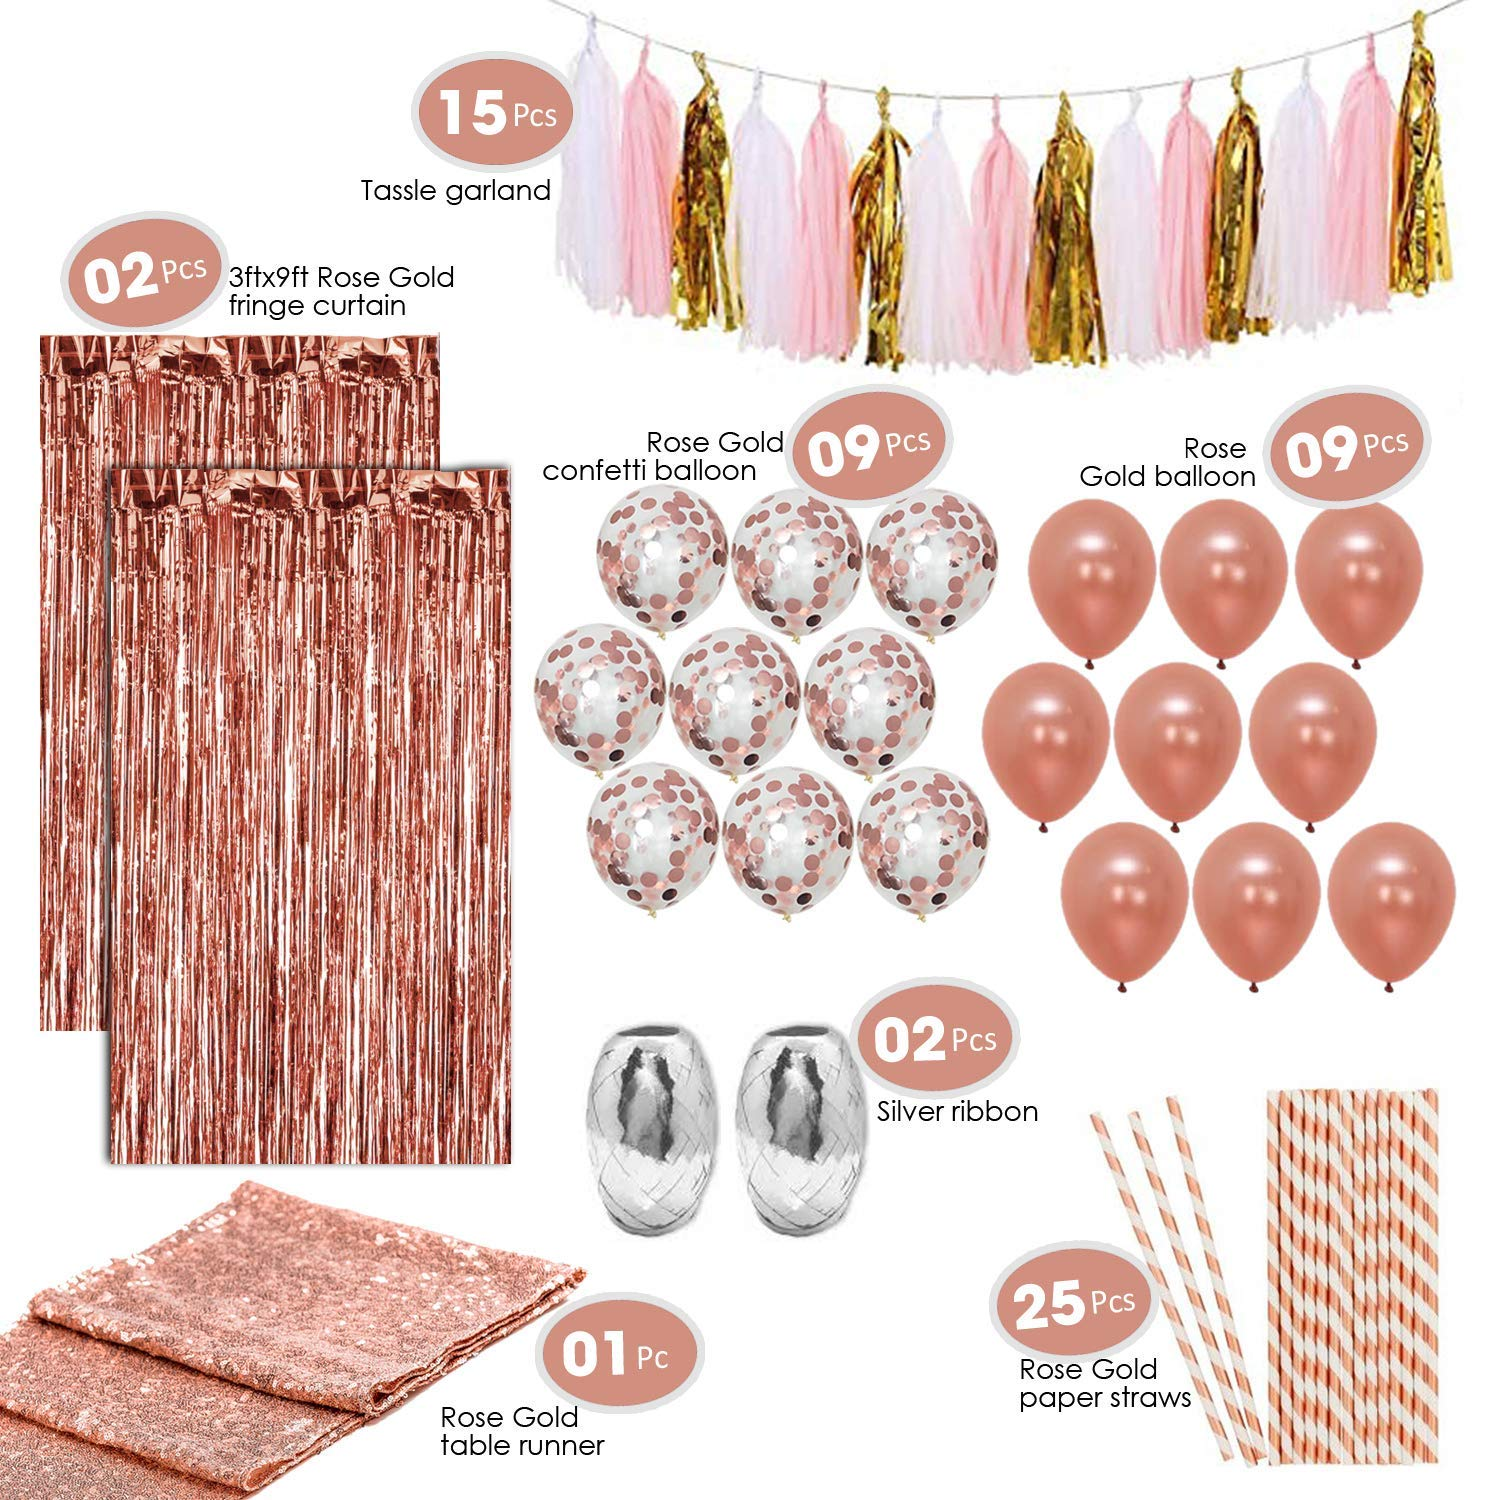 Artunique 63pc Rose Gold Party Decorations Kit | Huge 18 inch Latex and Confetti Balloons (18) | Sequin Table Runner (1) | Fringe Curtain (2) | Ribbon (2) | Paper Straws (25) | Tassle Garland (15)